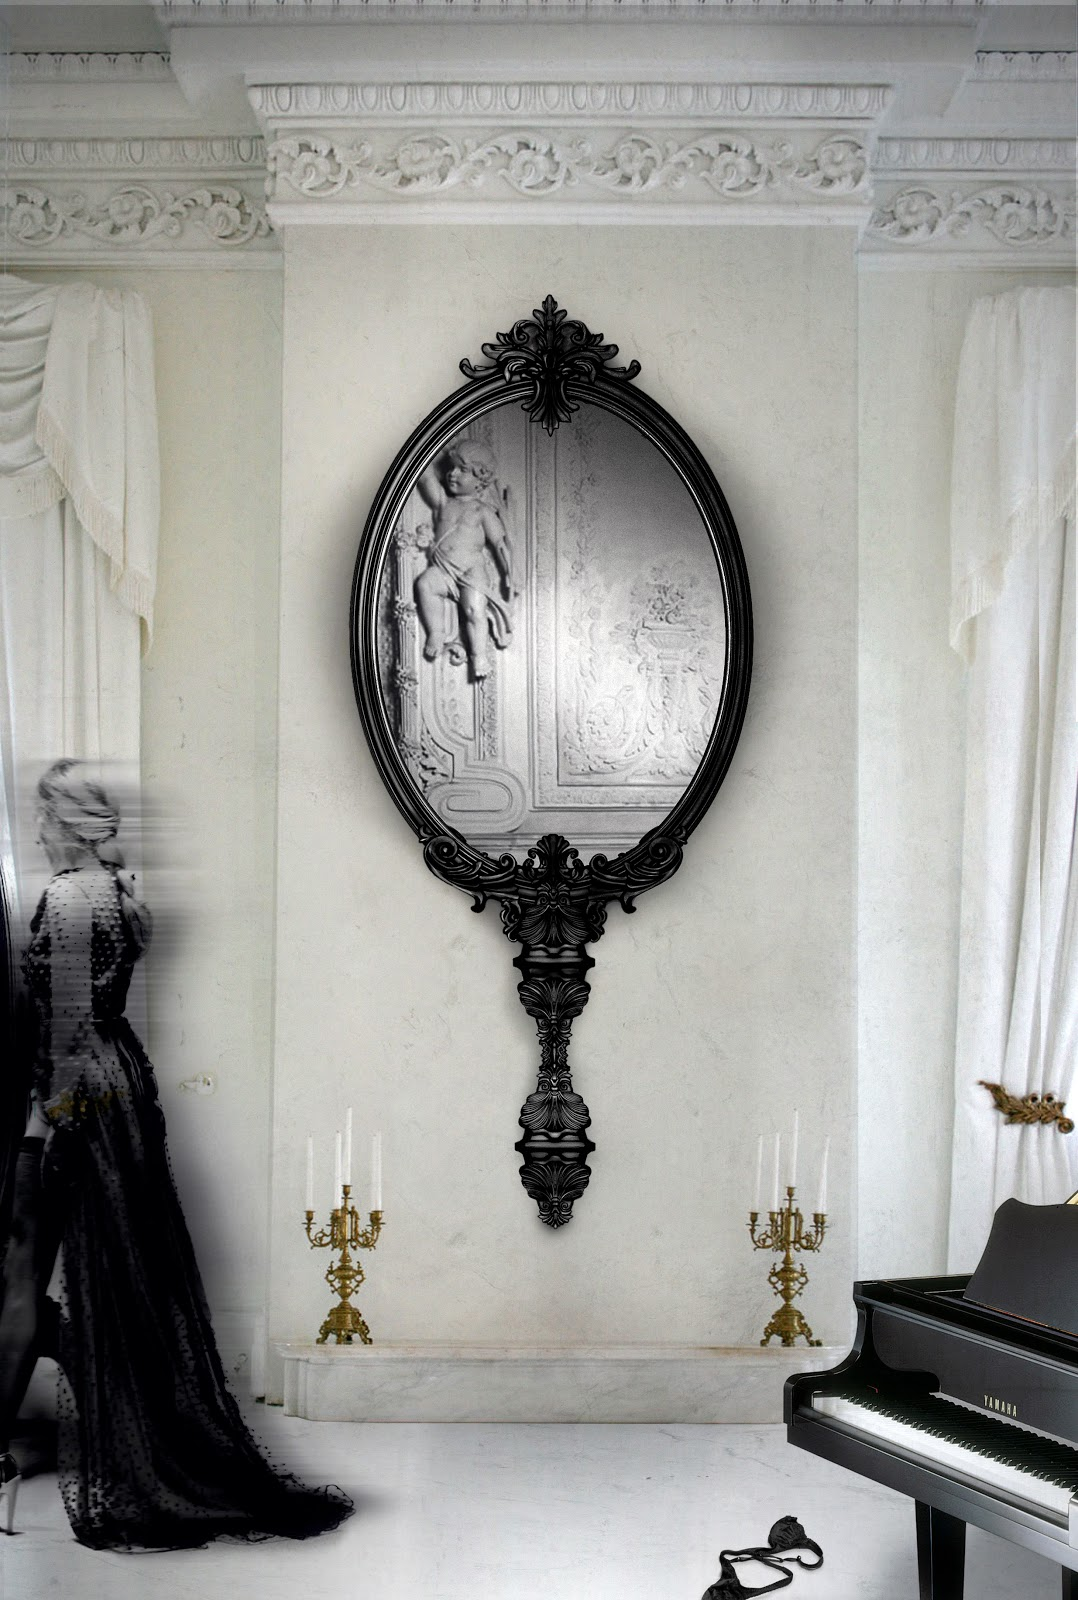 Maison & Objet 2015: Art and Decoration - 5 Mirror's exhibitors Maison & Objet 2015: Art and Decoration - 5 Mirror's exhibitors marie antoinette mirror 2